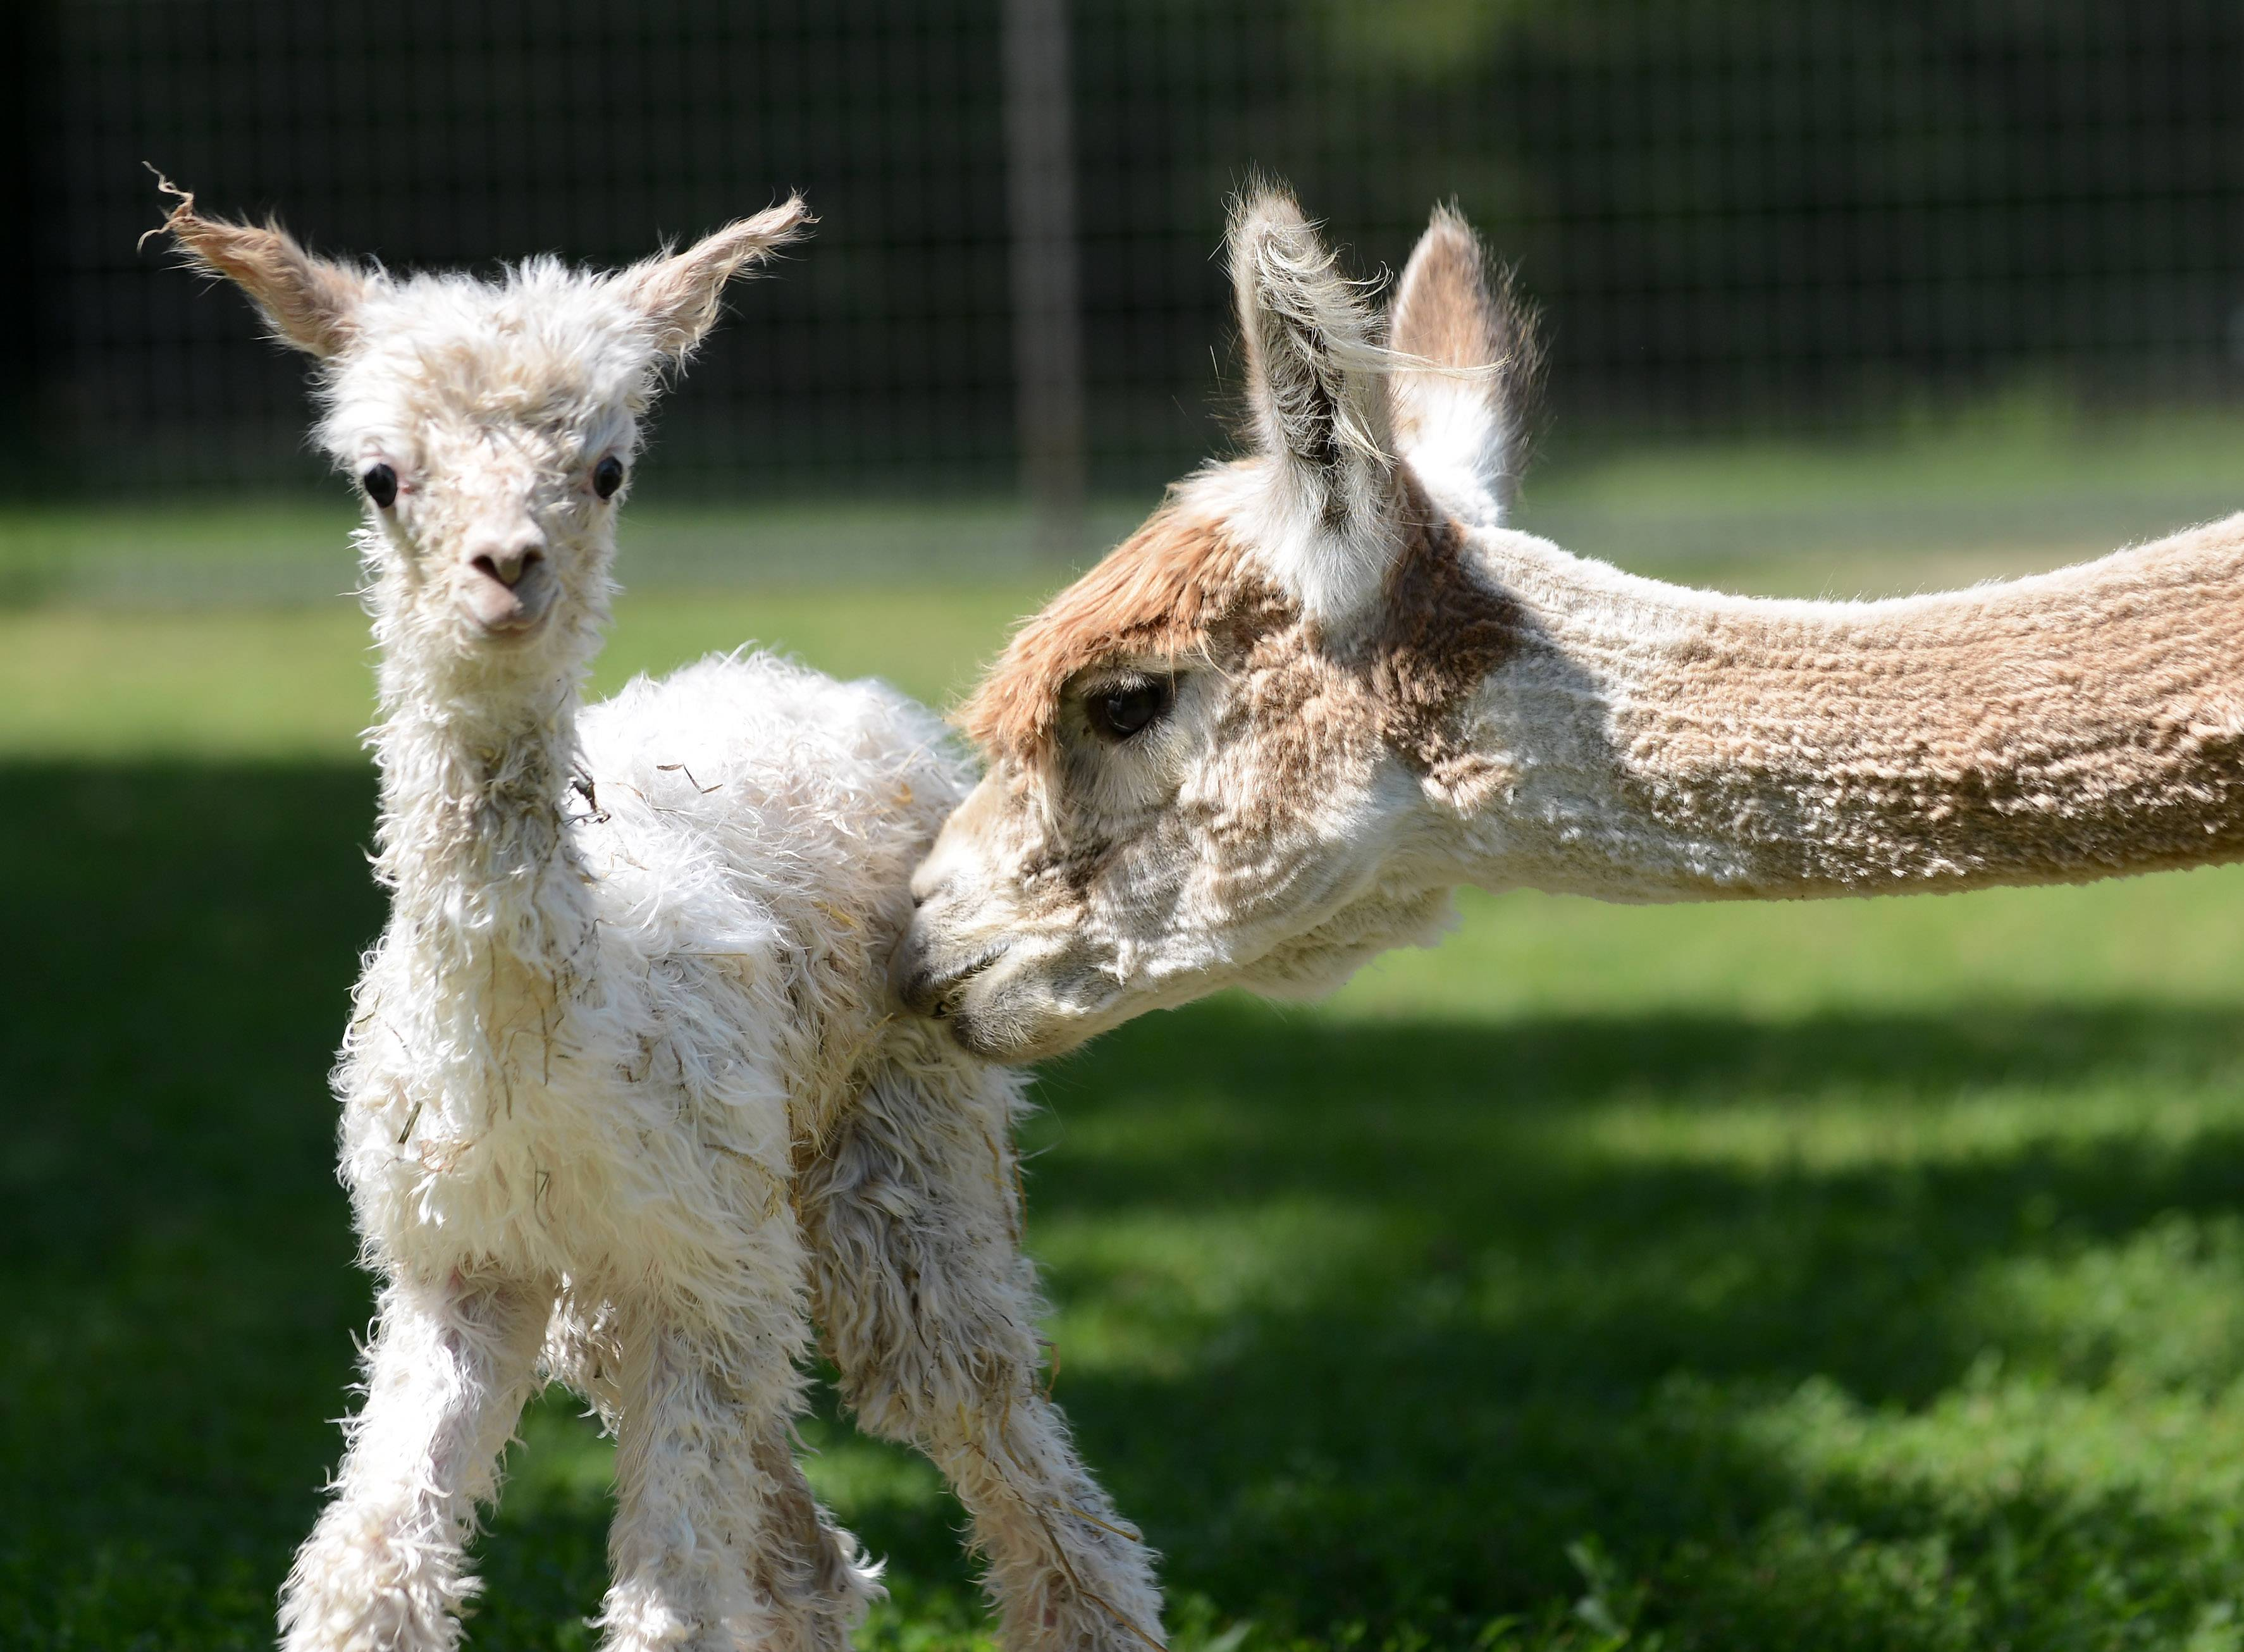 A mother alpaca stays close to her newborn baby at Waldron Grove Alpaca Farm. Visitors can check out alpacas for themselves, along with textiles, yarn made from alpaca fleece and artwork, when the farm hosts its spring open house this weekend.